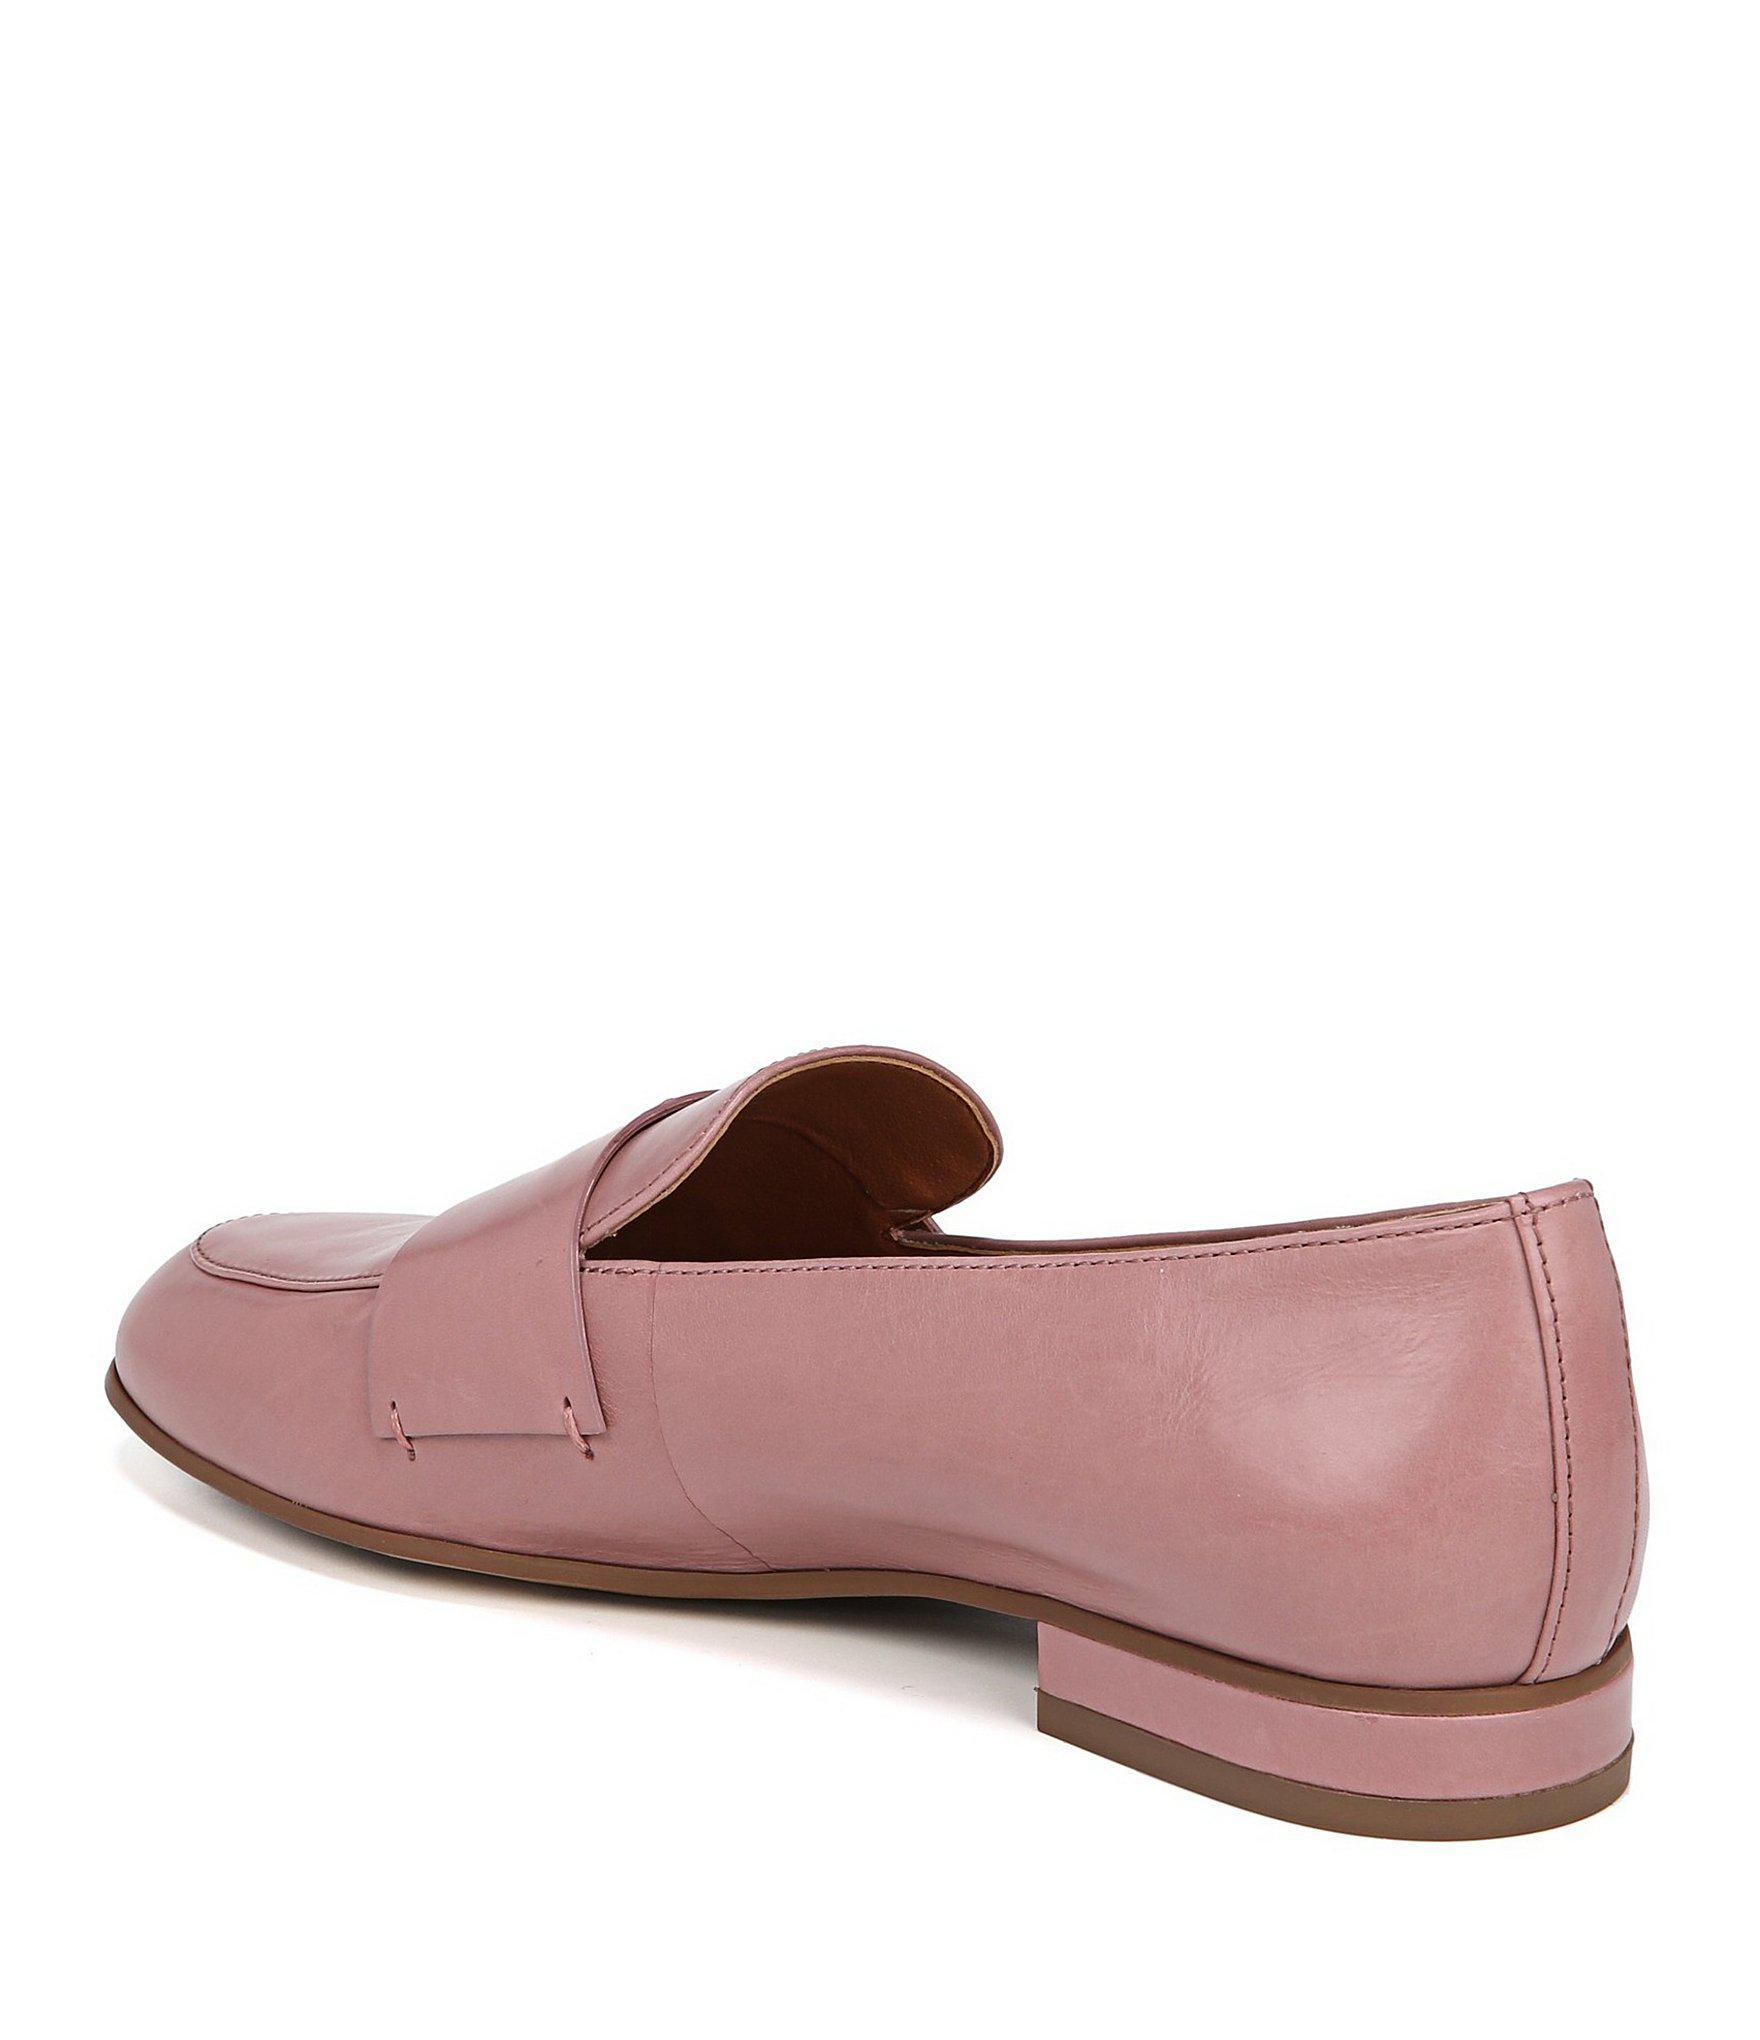 3fe6d251d49 Lyst - Franco Sarto Sarto By Kip Leather Loafers in Pink